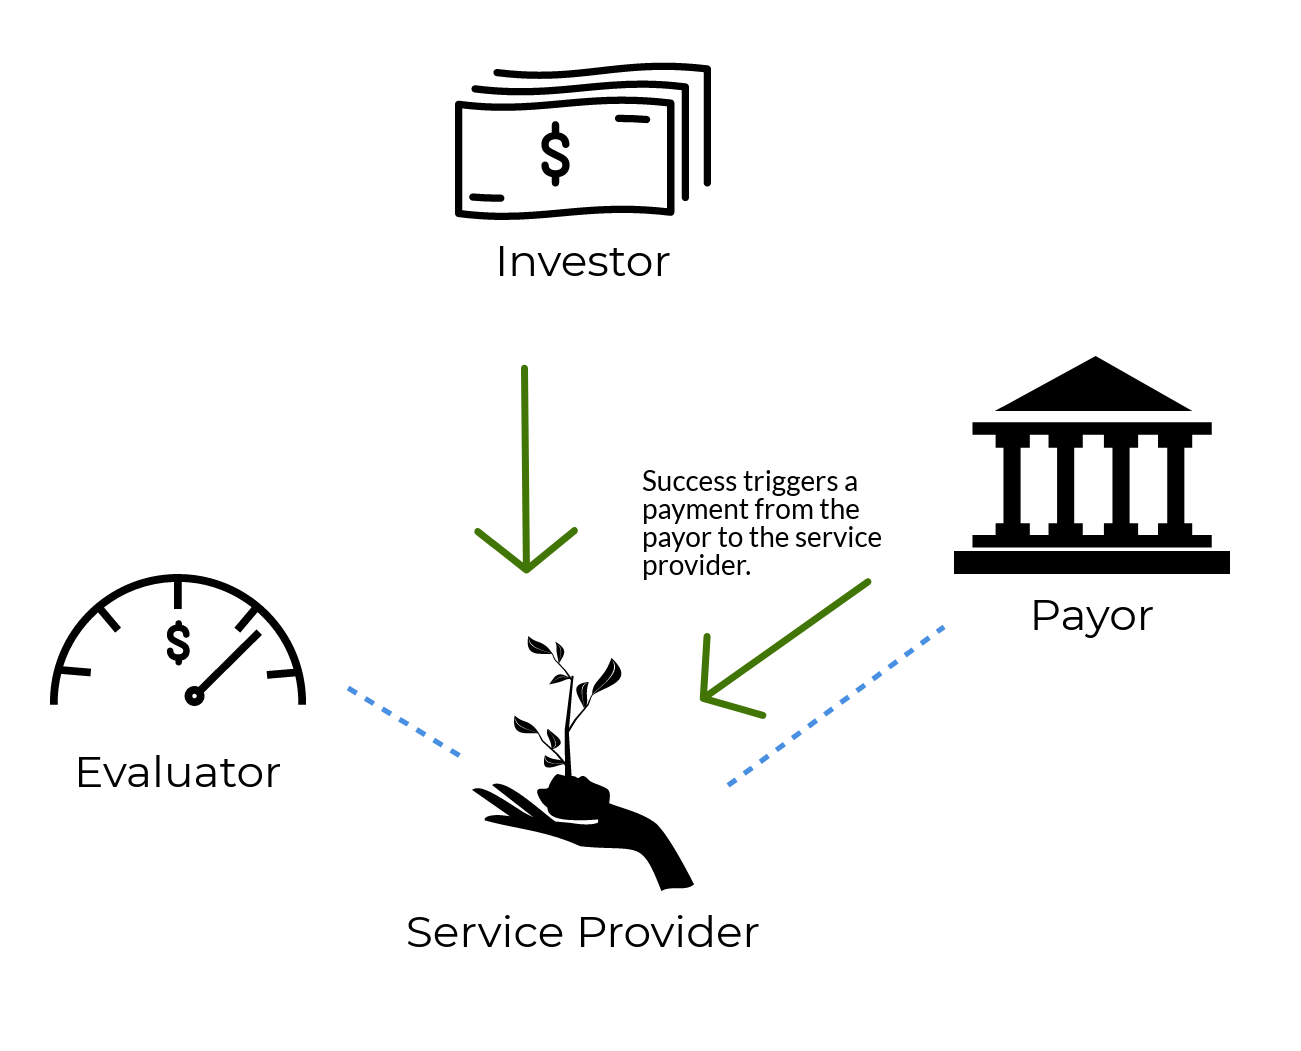 Step 4: Success triggers a payment from the payor to the service provider. Graphic courtesy: Environmental Incentives